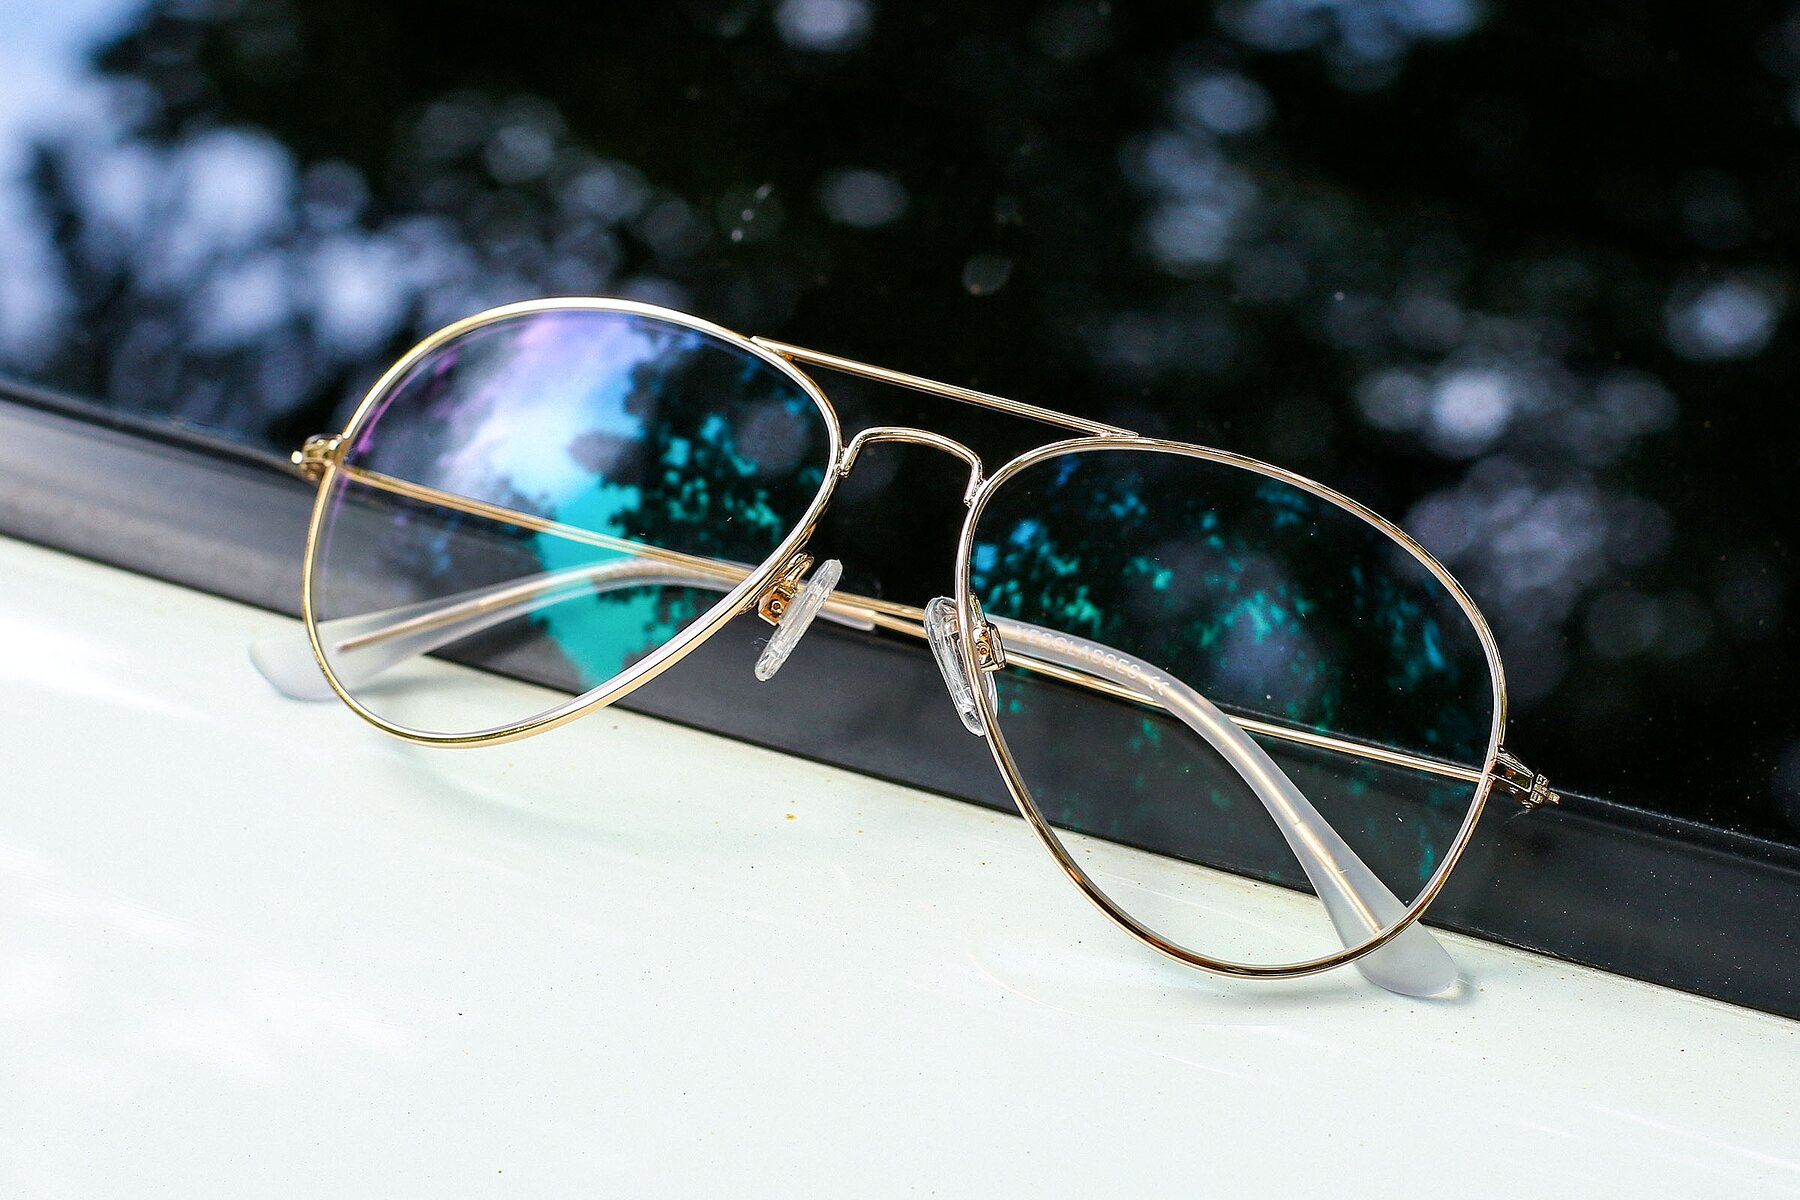 Lifestyle photography #1 of Yesterday in Shiny Gold with Clear Eyeglass Lenses